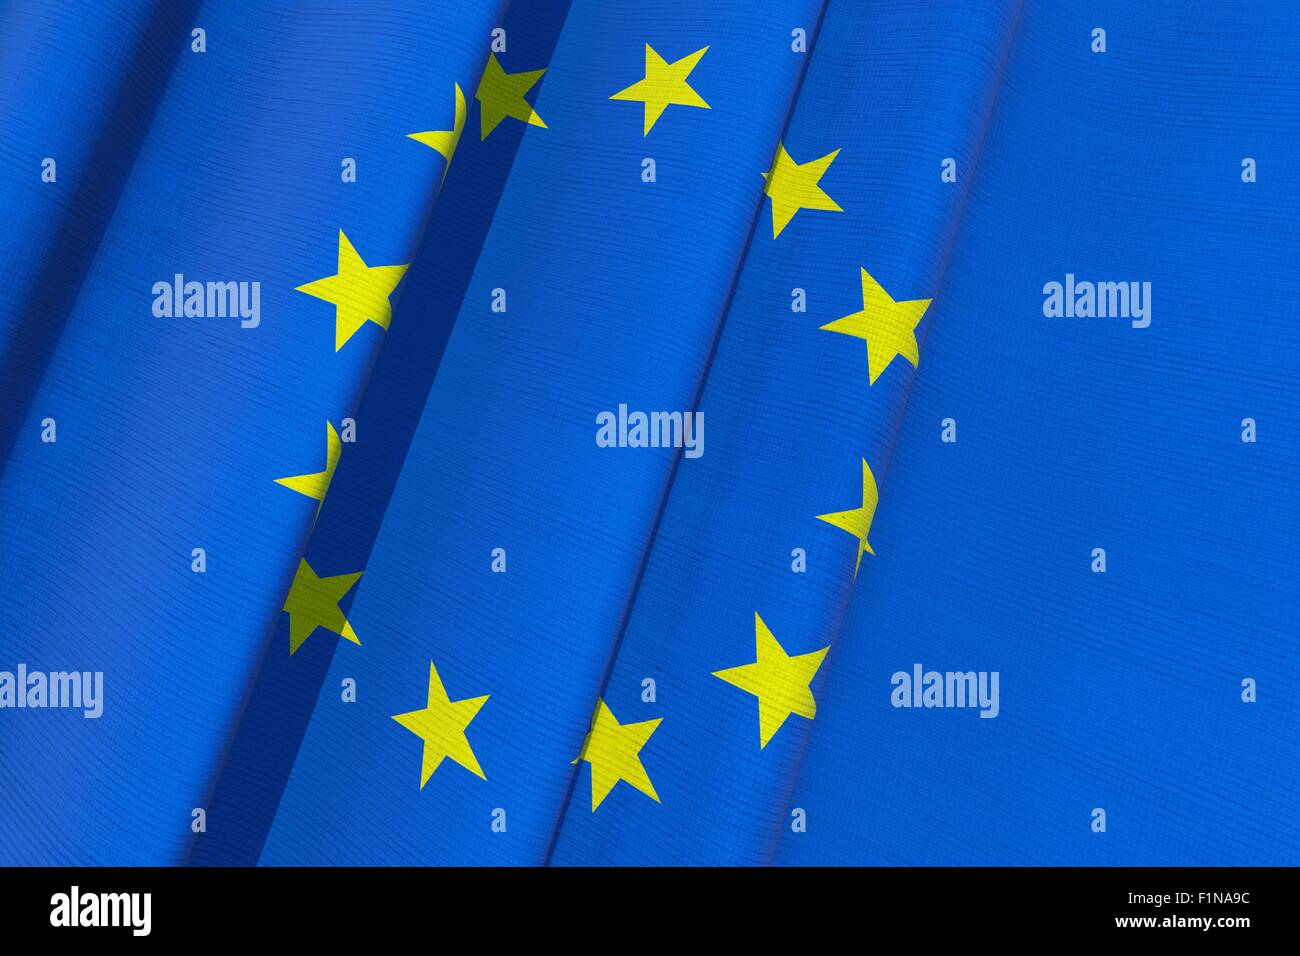 European Union 3D Flag Illustration. Waving European Union Flag. - Stock Image